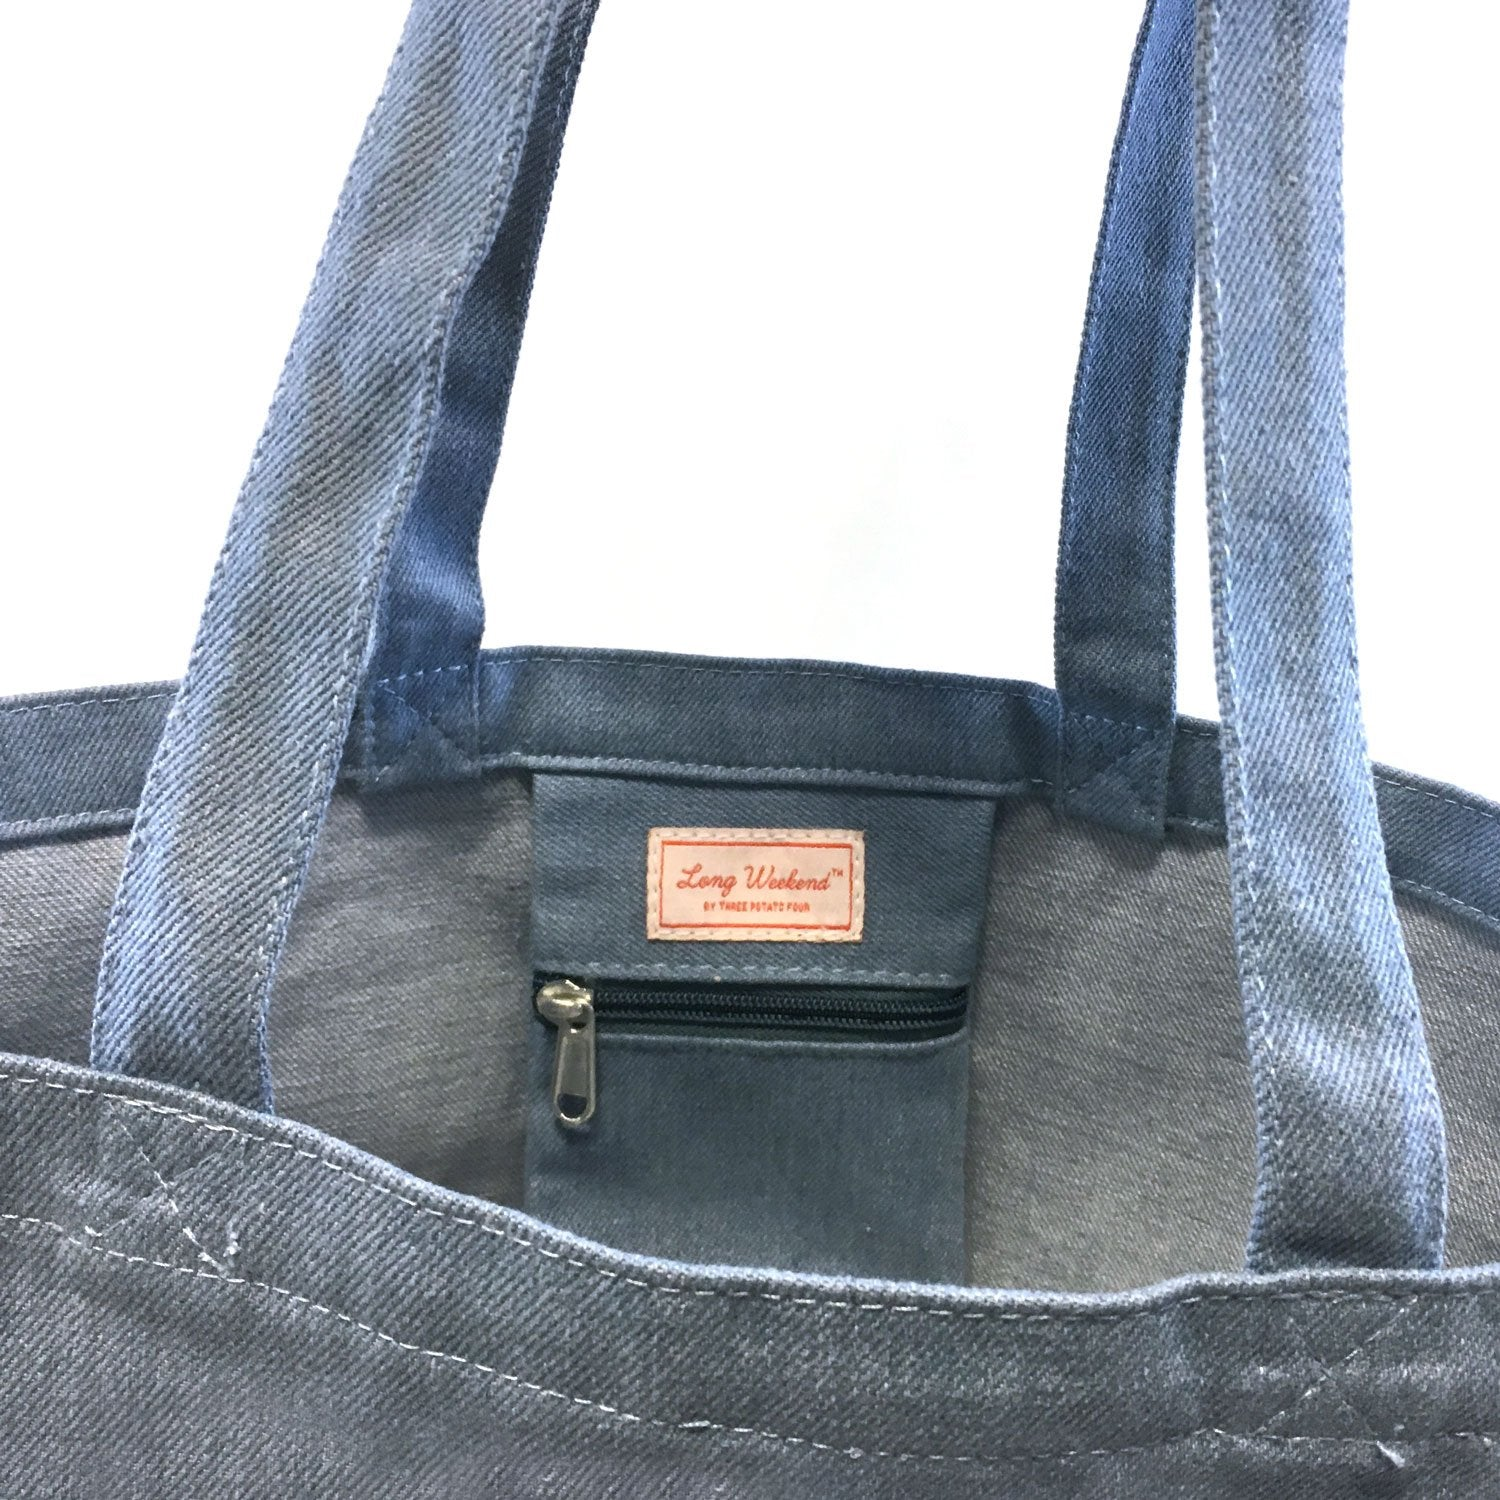 interior zip pocket of soft washed denim tote bag with white graphic sun design